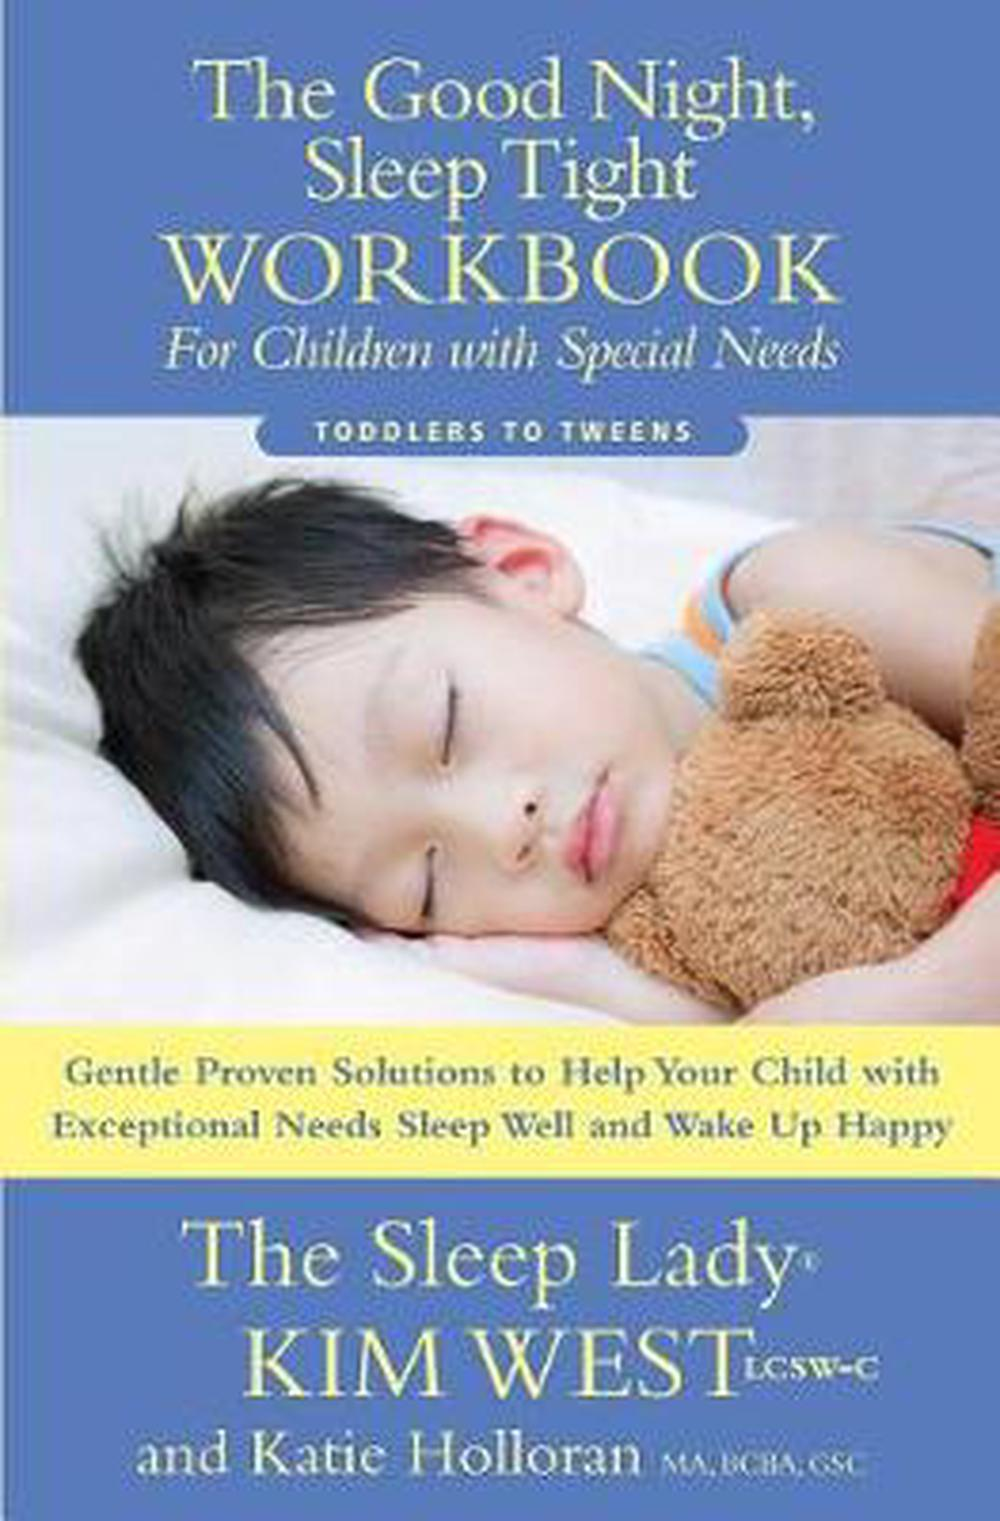 The Good Night Sleep Tight Workbook for Children with Special Needs: Gentle Proven Solutions to Help Your Child with Exceptional Needs Sleep Well and